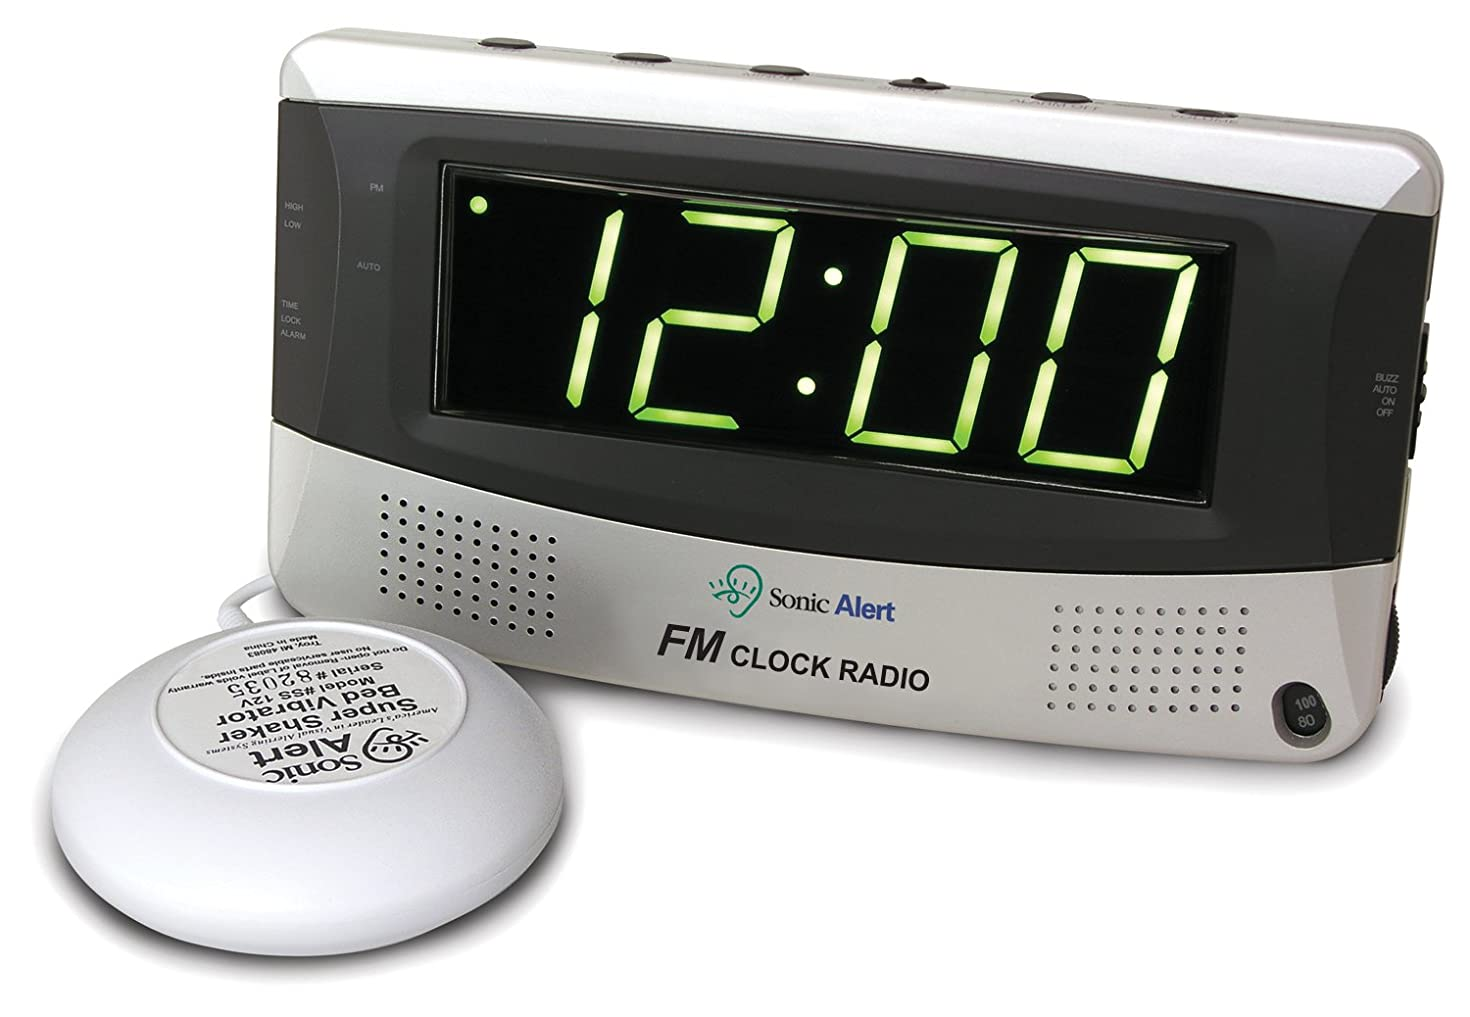 Sonic Alert Sonic Bomb Extra-Loud FM Radio Alarm Clock with Bed Super Shaker for Heavy Sleepers, Teenagers, People with Hearing Loss, Seniors, and The Deaf - Sonic Boom SBR350SS